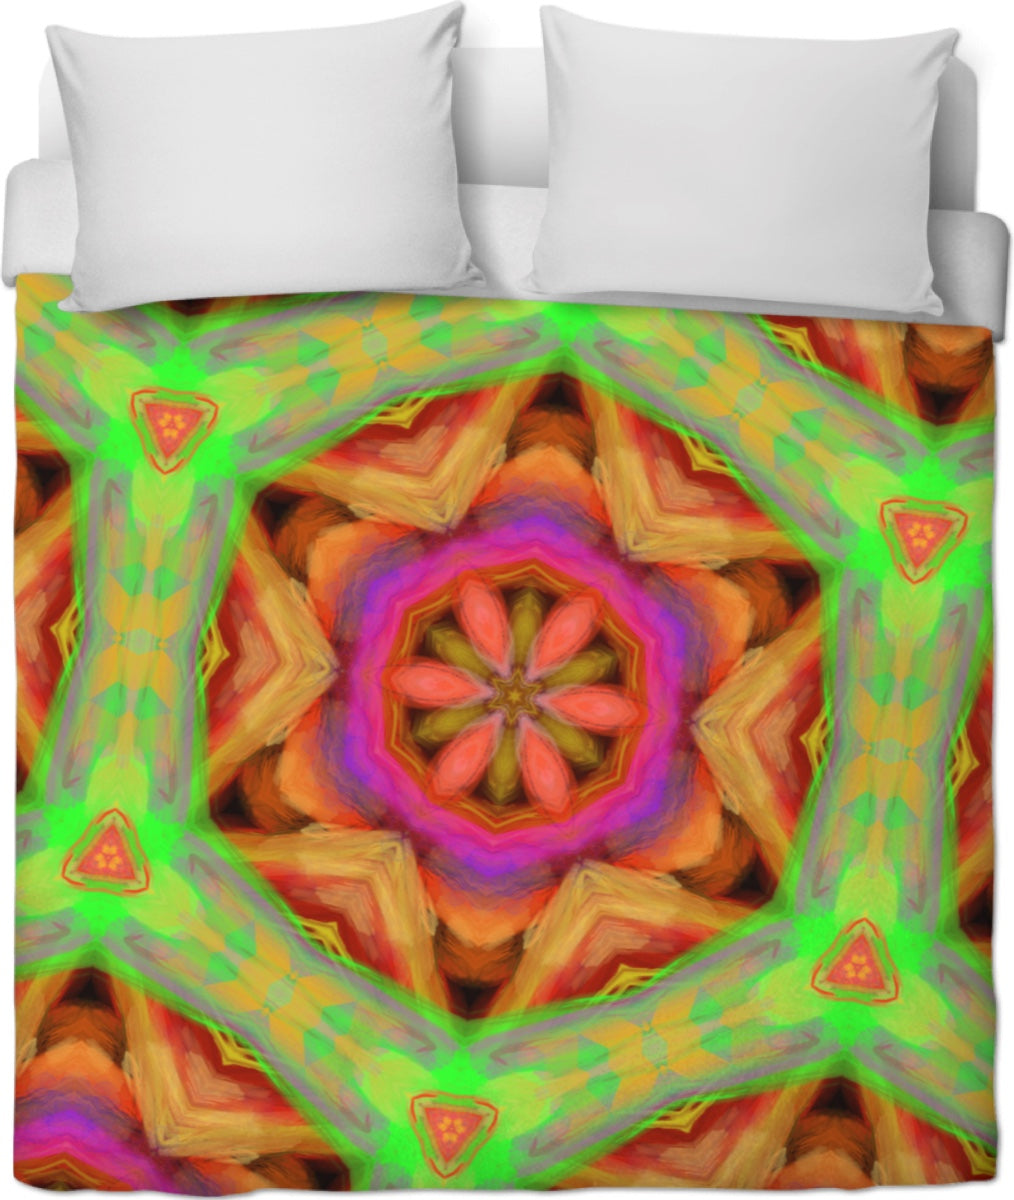 Duvet covers Pattern Collection181